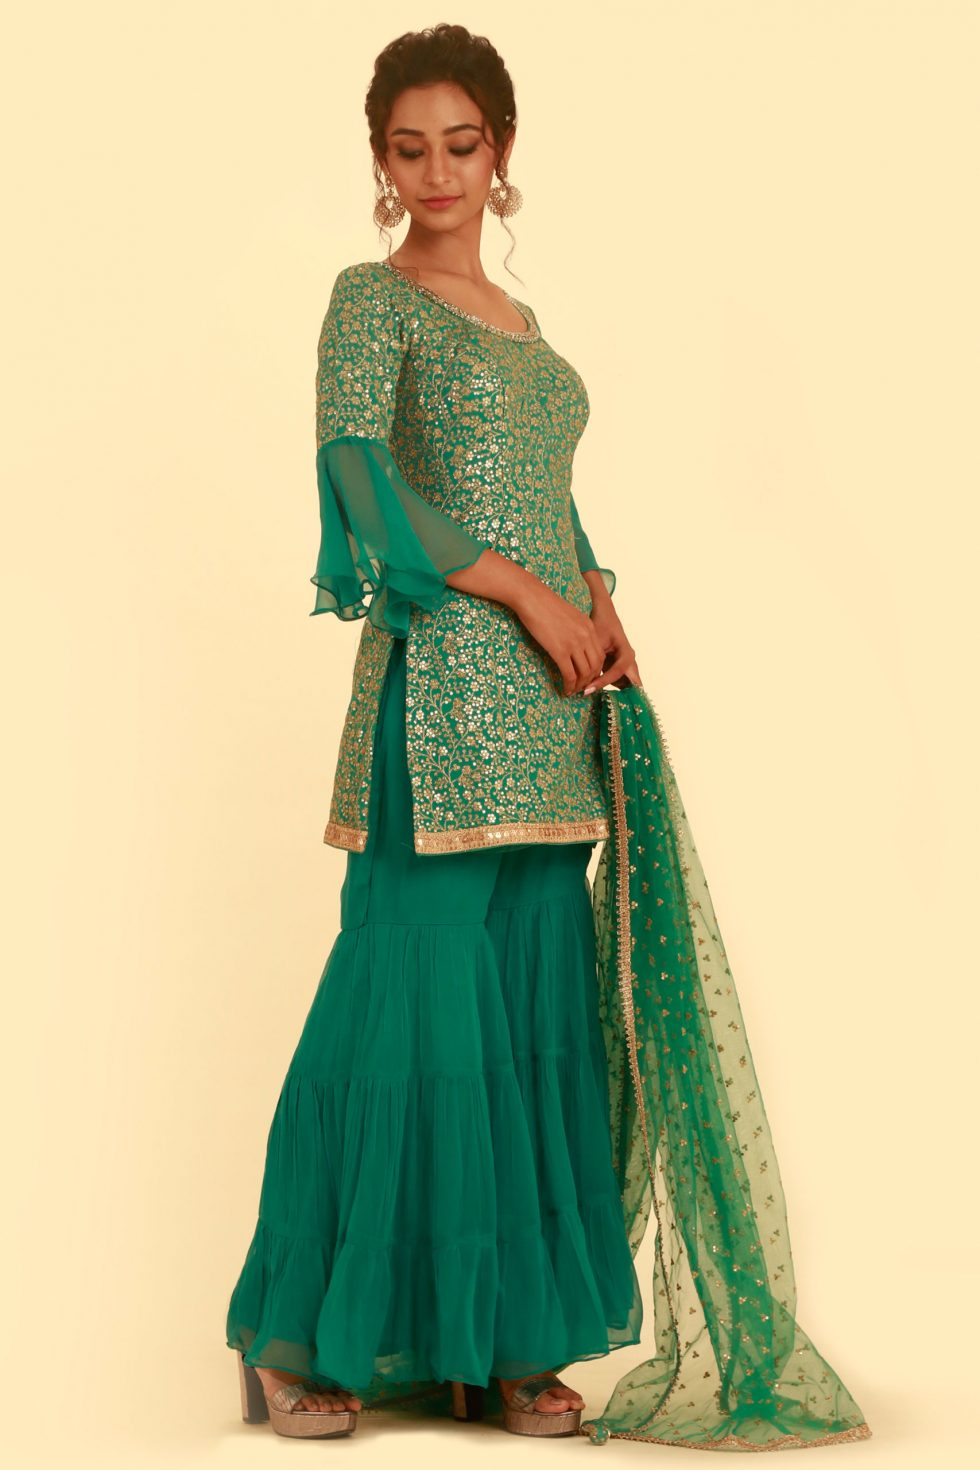 Teal green sharara pant and salwar set with gold embroidery, bell sleeves and matching dupatta